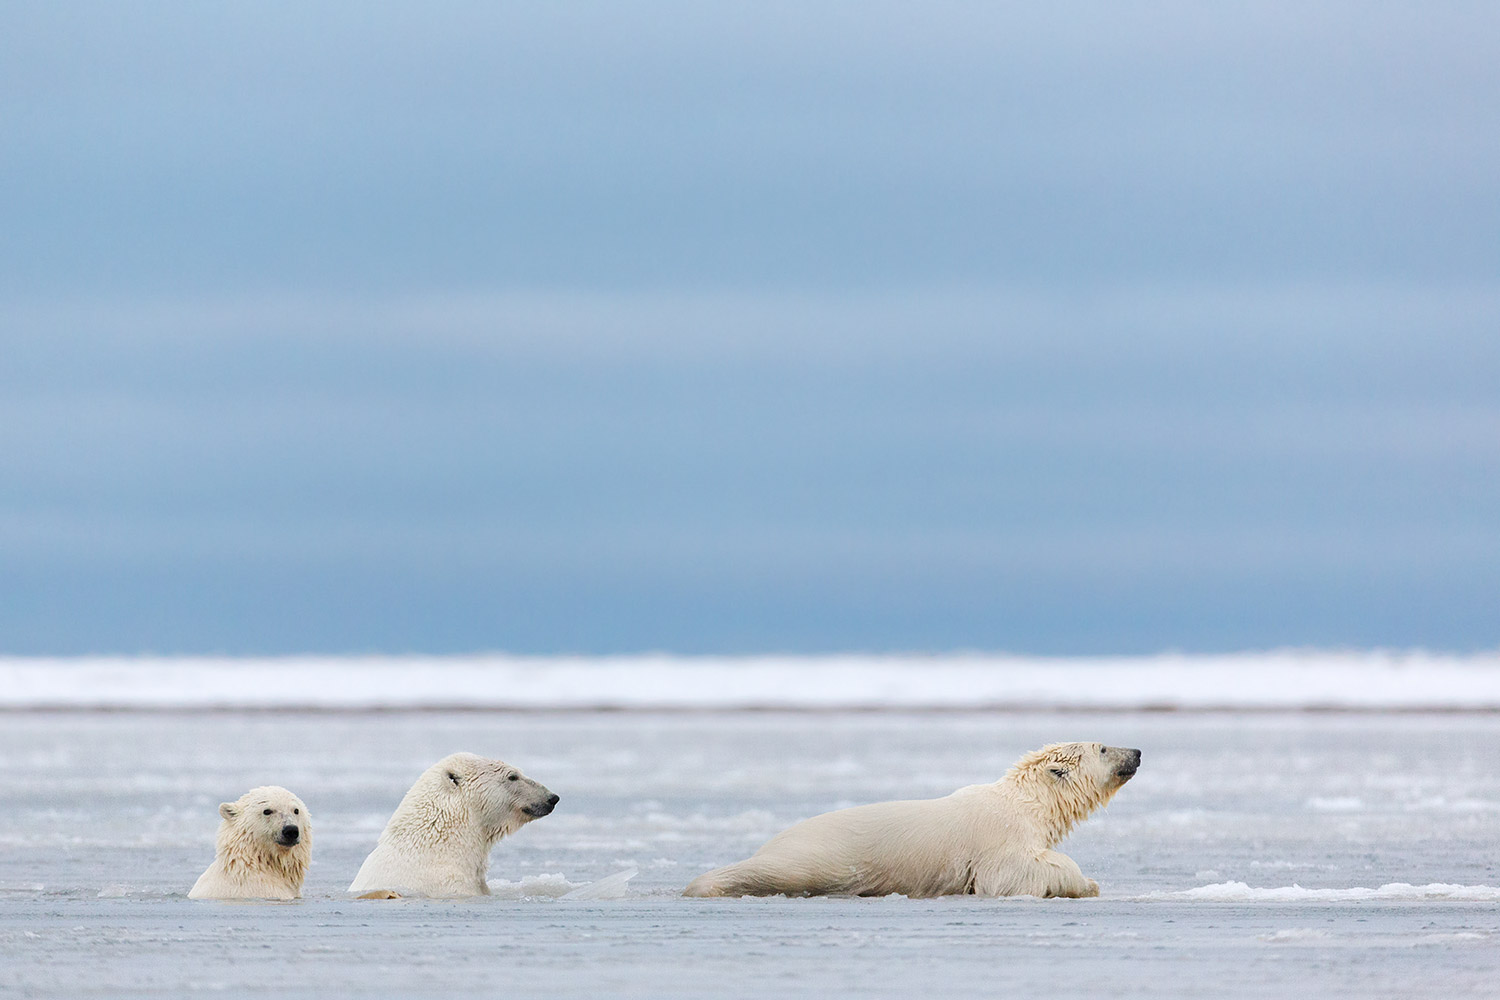 Polar-bear-and-cubs-swimming-in-icy-water-2,-Arctic-National-Wildlife-Refuge,-Alaska,-USA